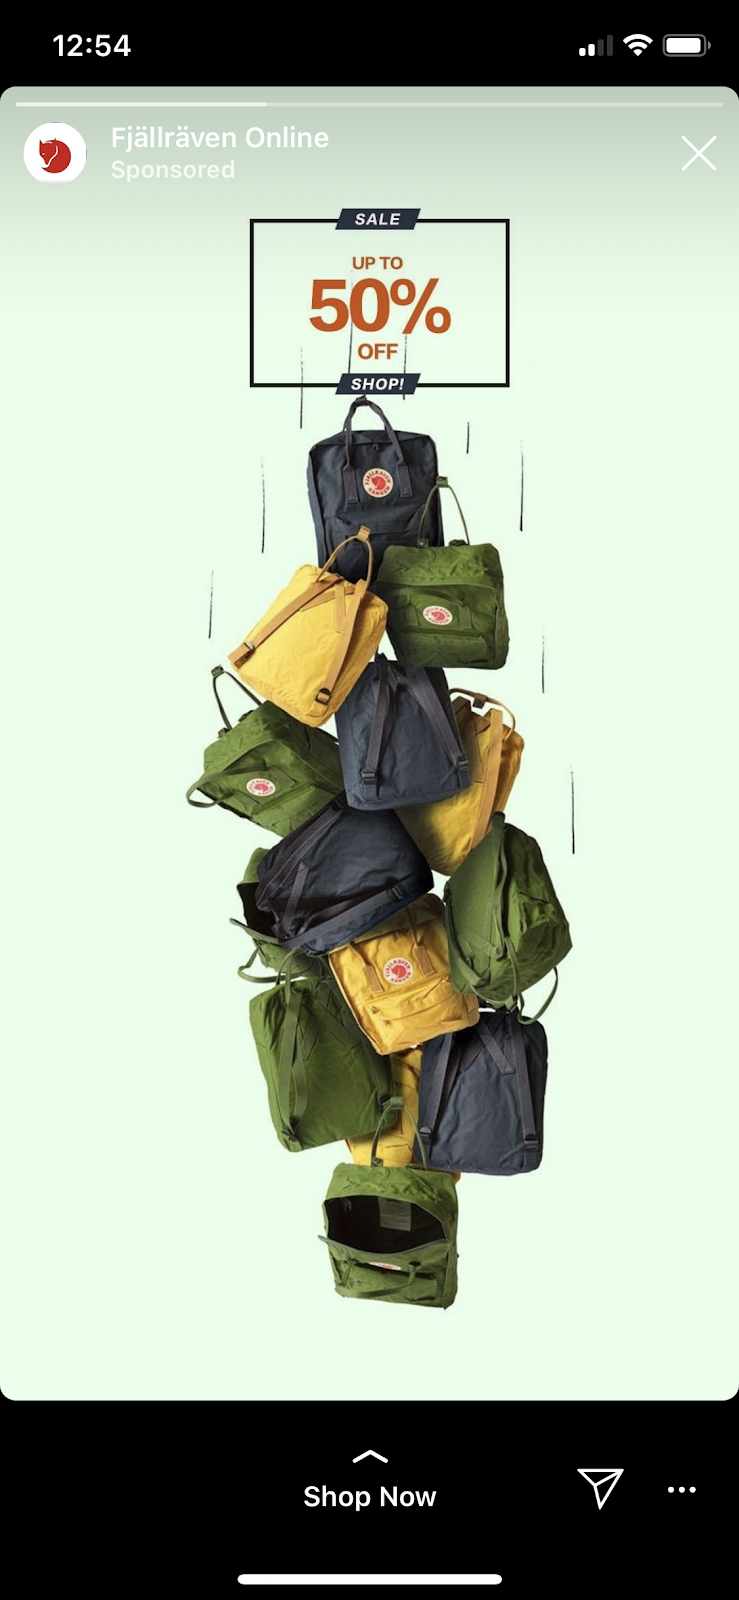 Fjallraven Instagram story ad example